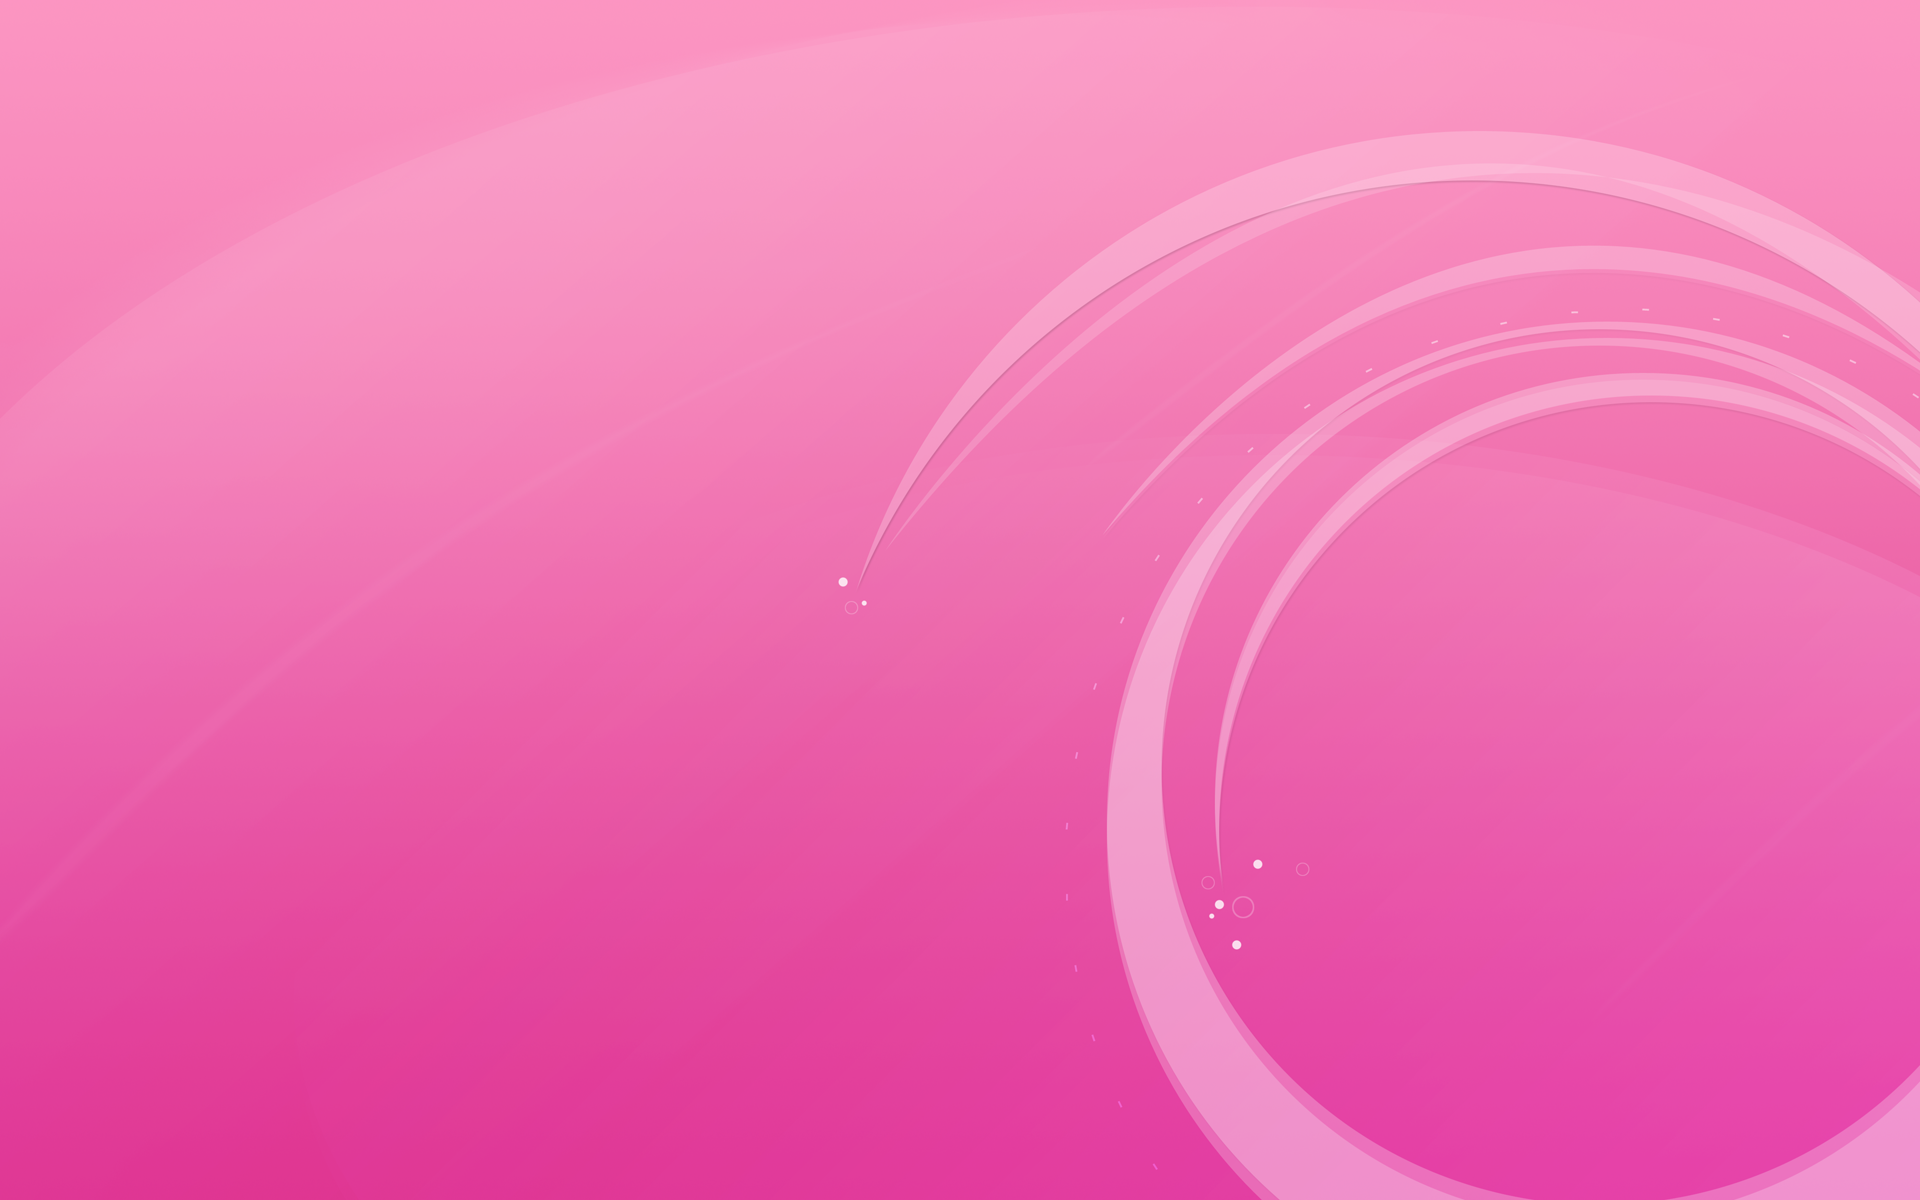 Pink Background wallpaper   354776 1920x1200